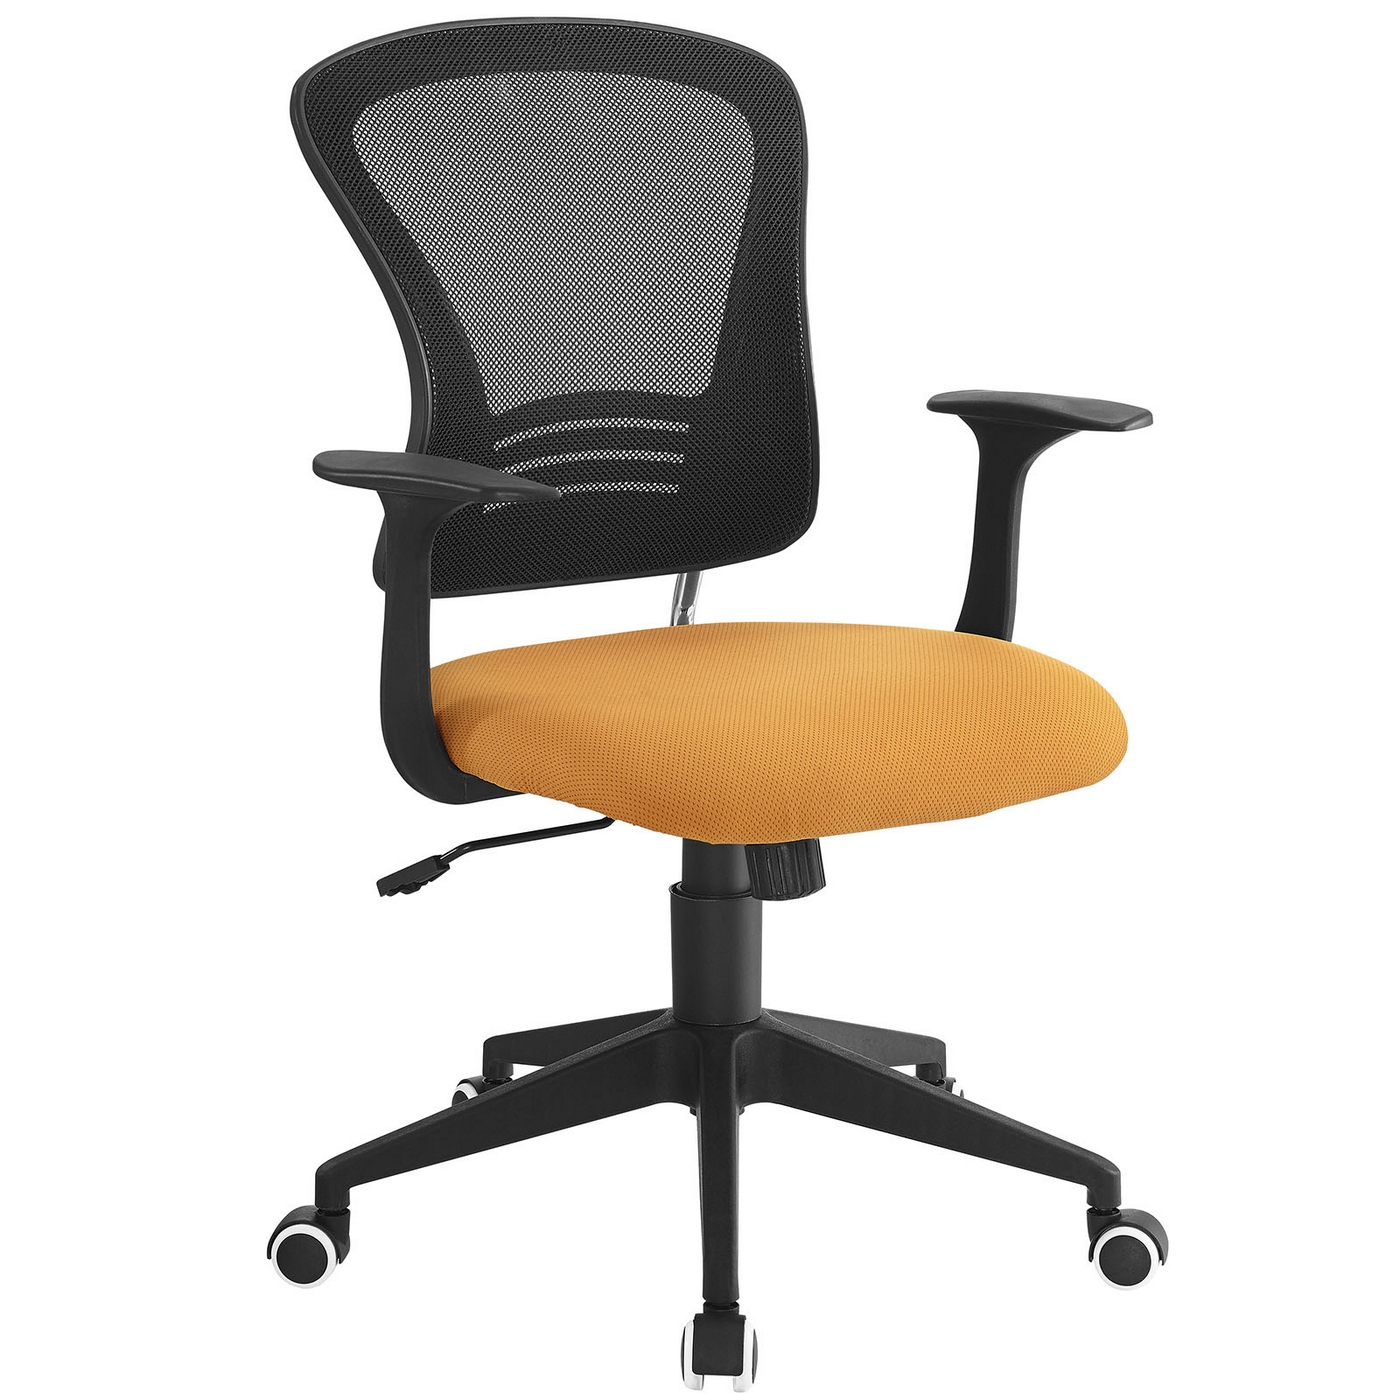 office chair orange mity lite poise modern ergonomic mesh back with lumbar